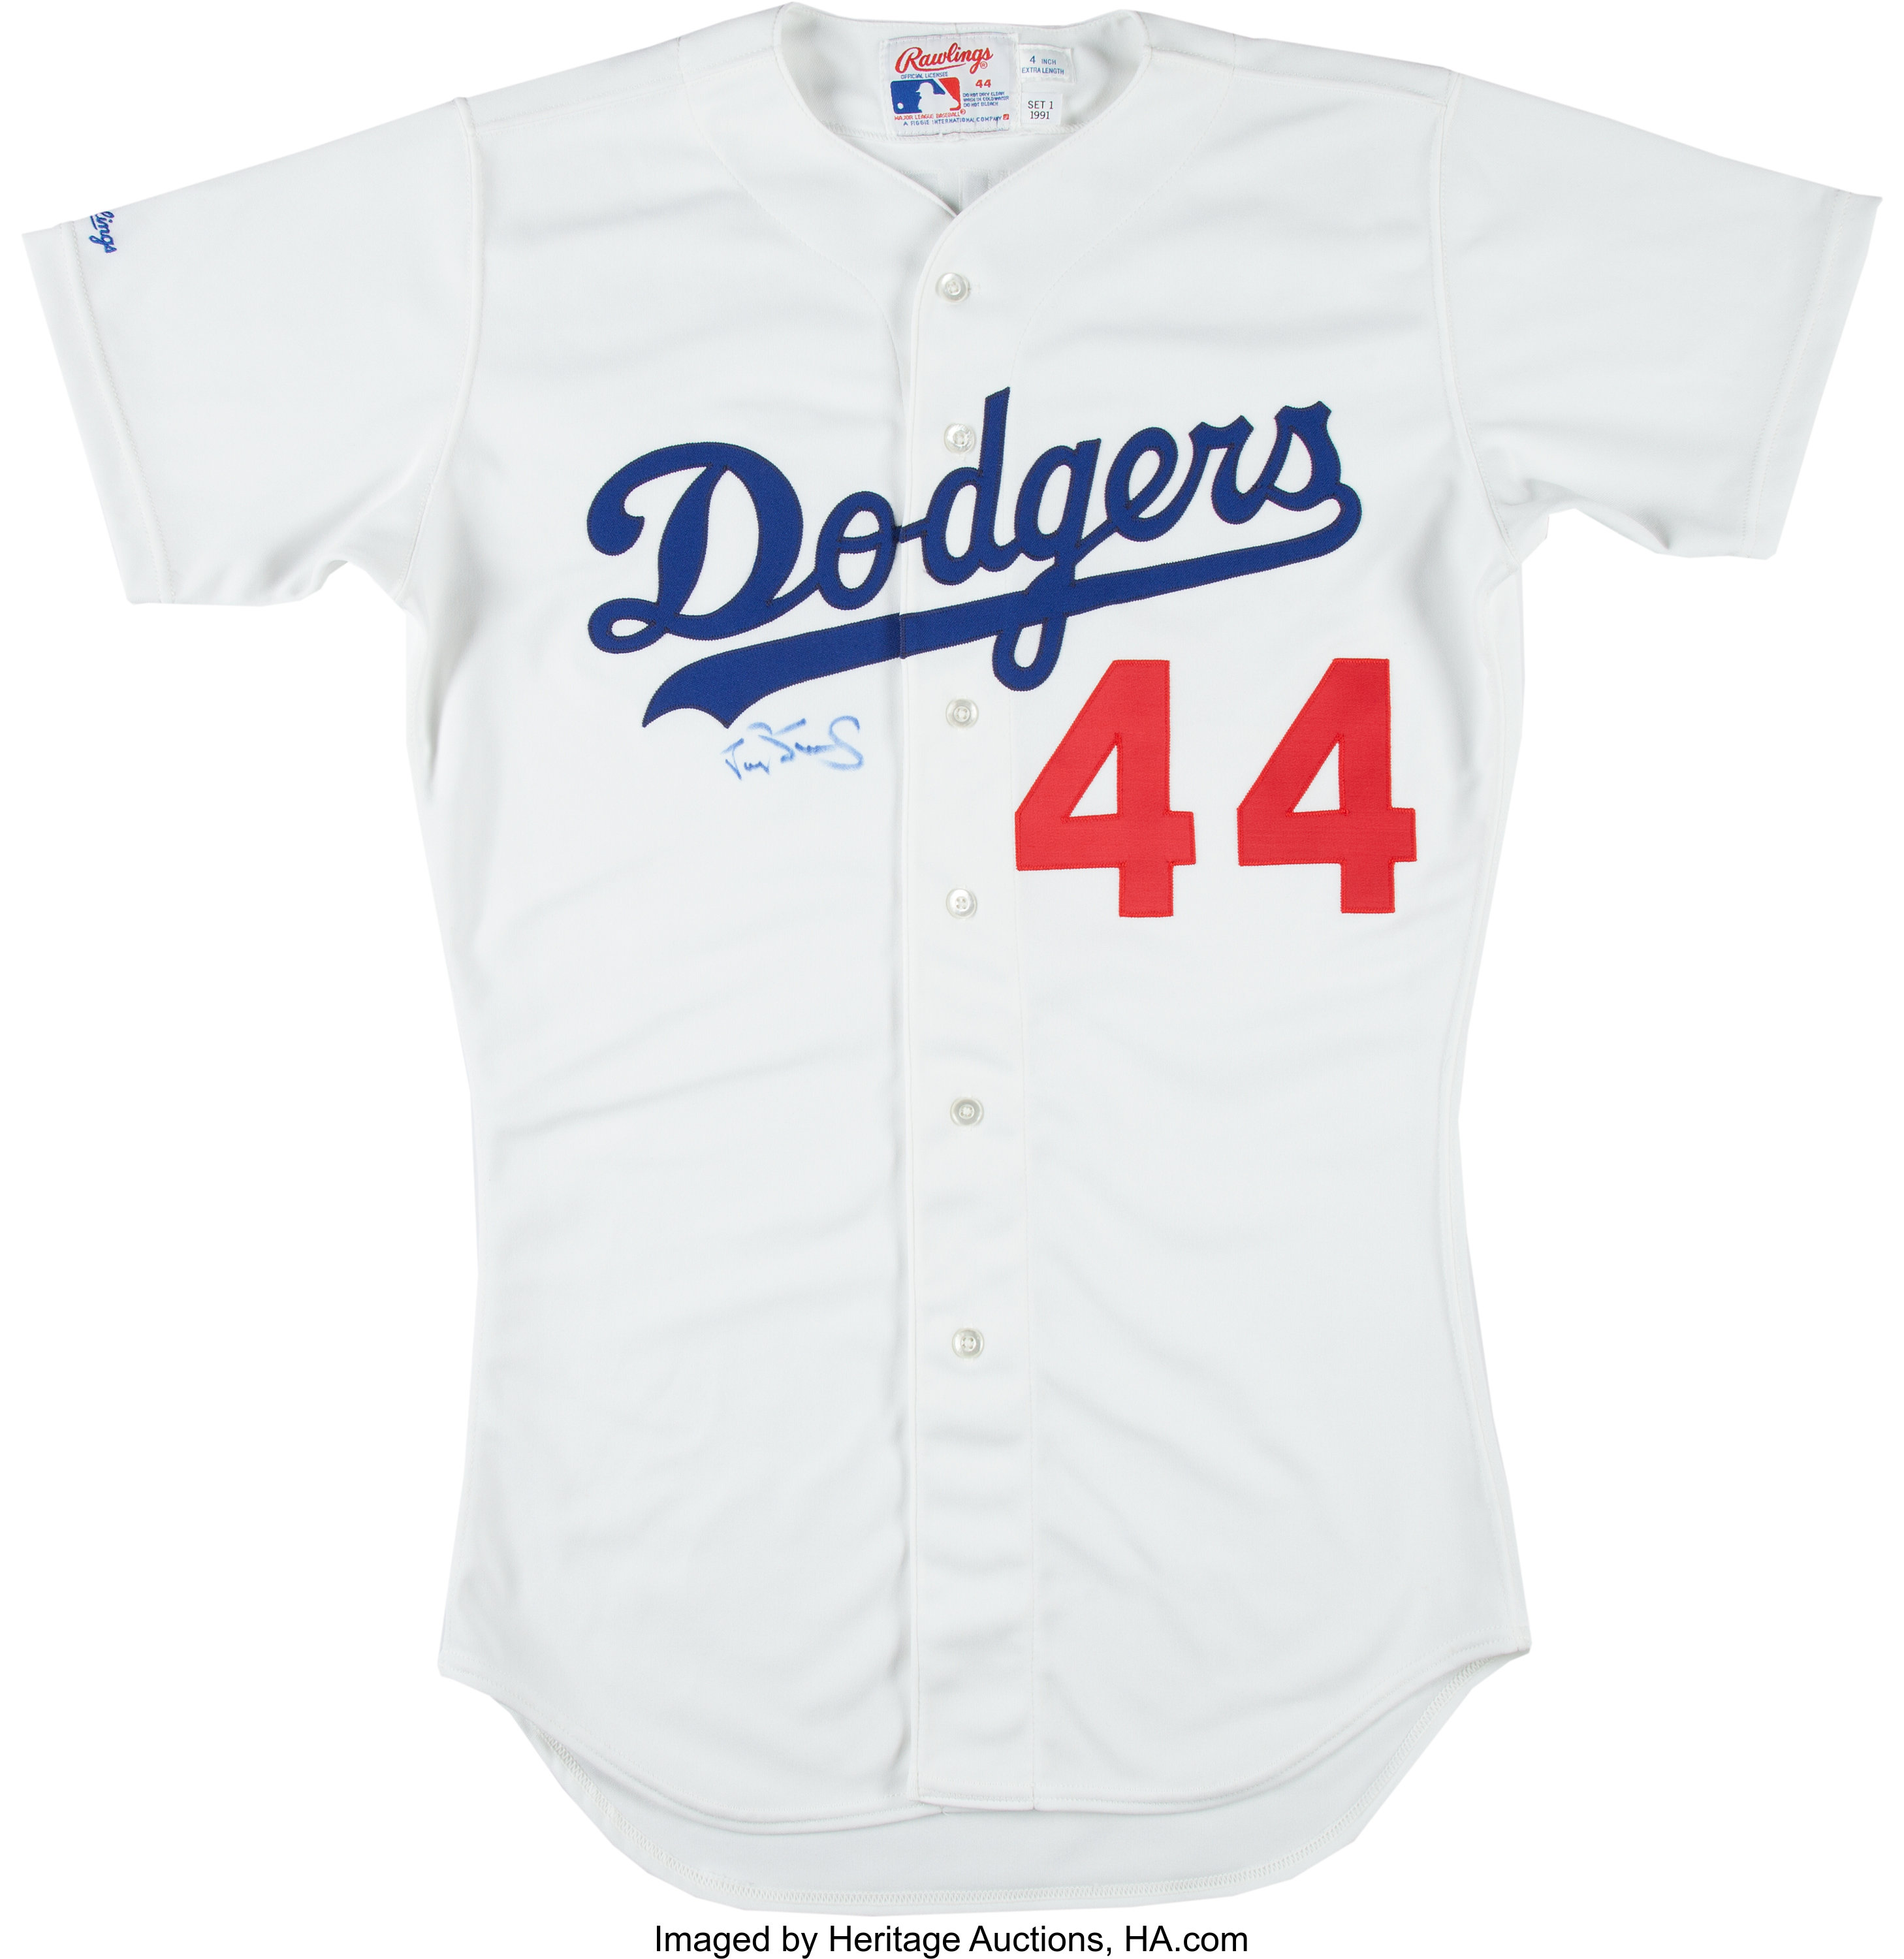 9850dc449 1991 Darryl Strawberry Game Worn Los Angeles Dodgers Jersey. ... | Lot  #14808 | Heritage Auctions